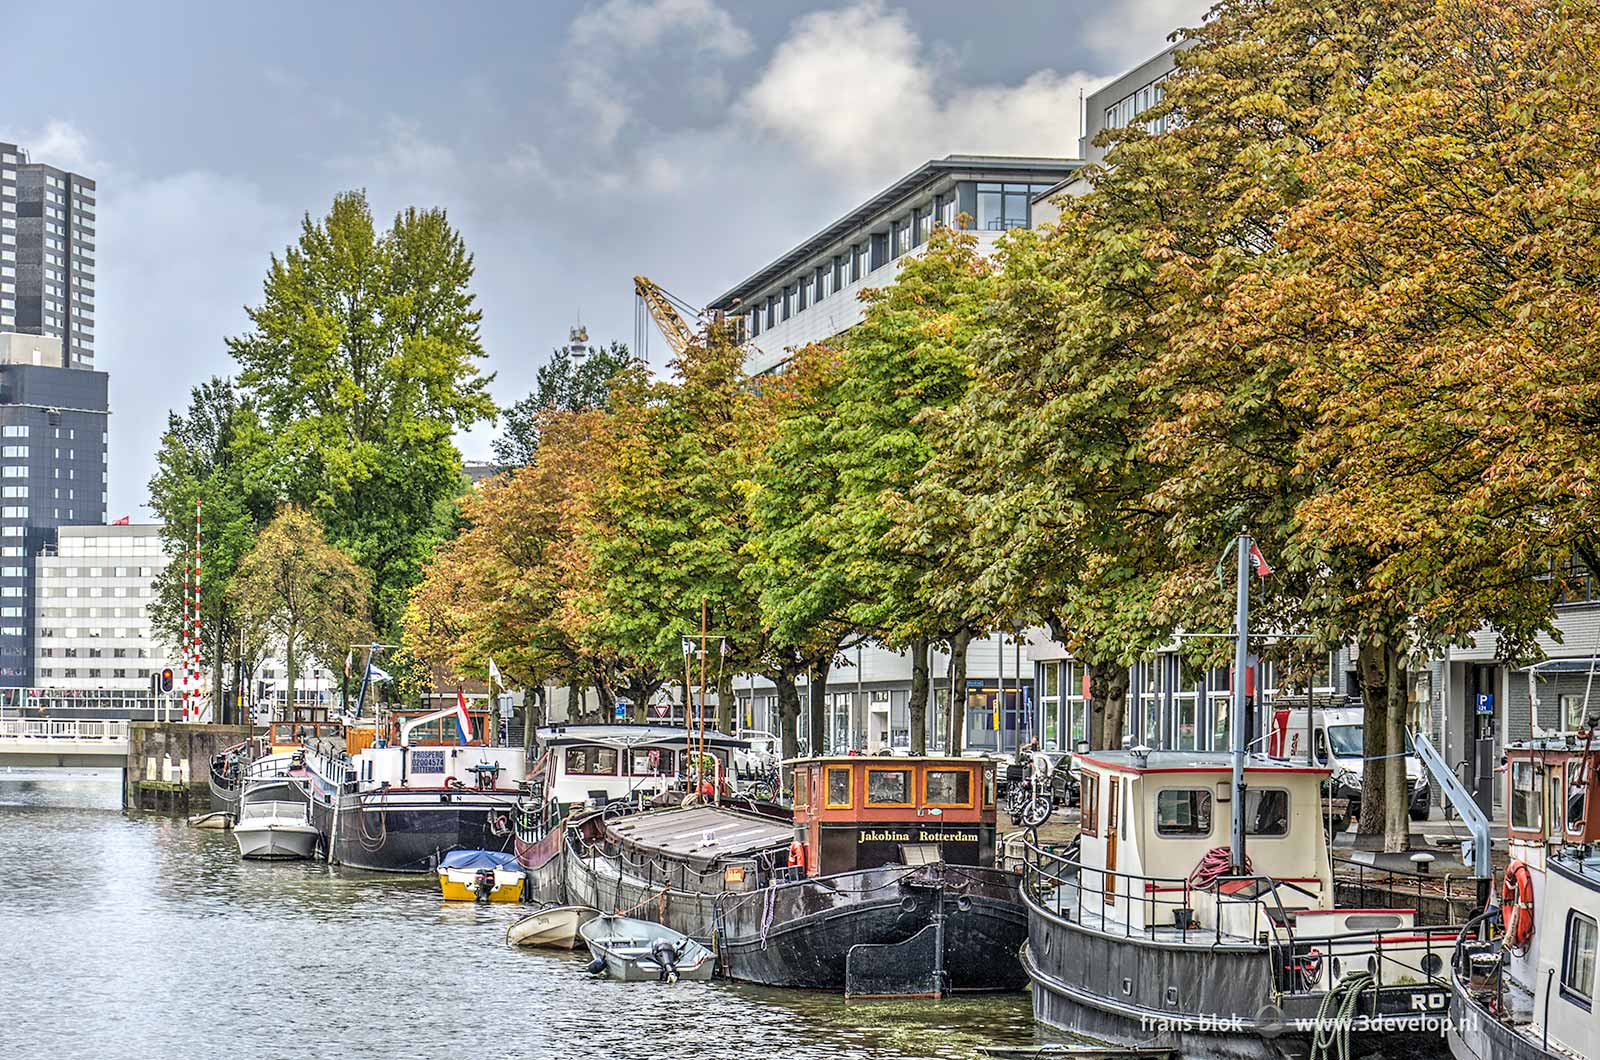 Houseboats, office buildings and discolouring trees on Scheepmakershaven in Rotterdam at the beginning of autumn